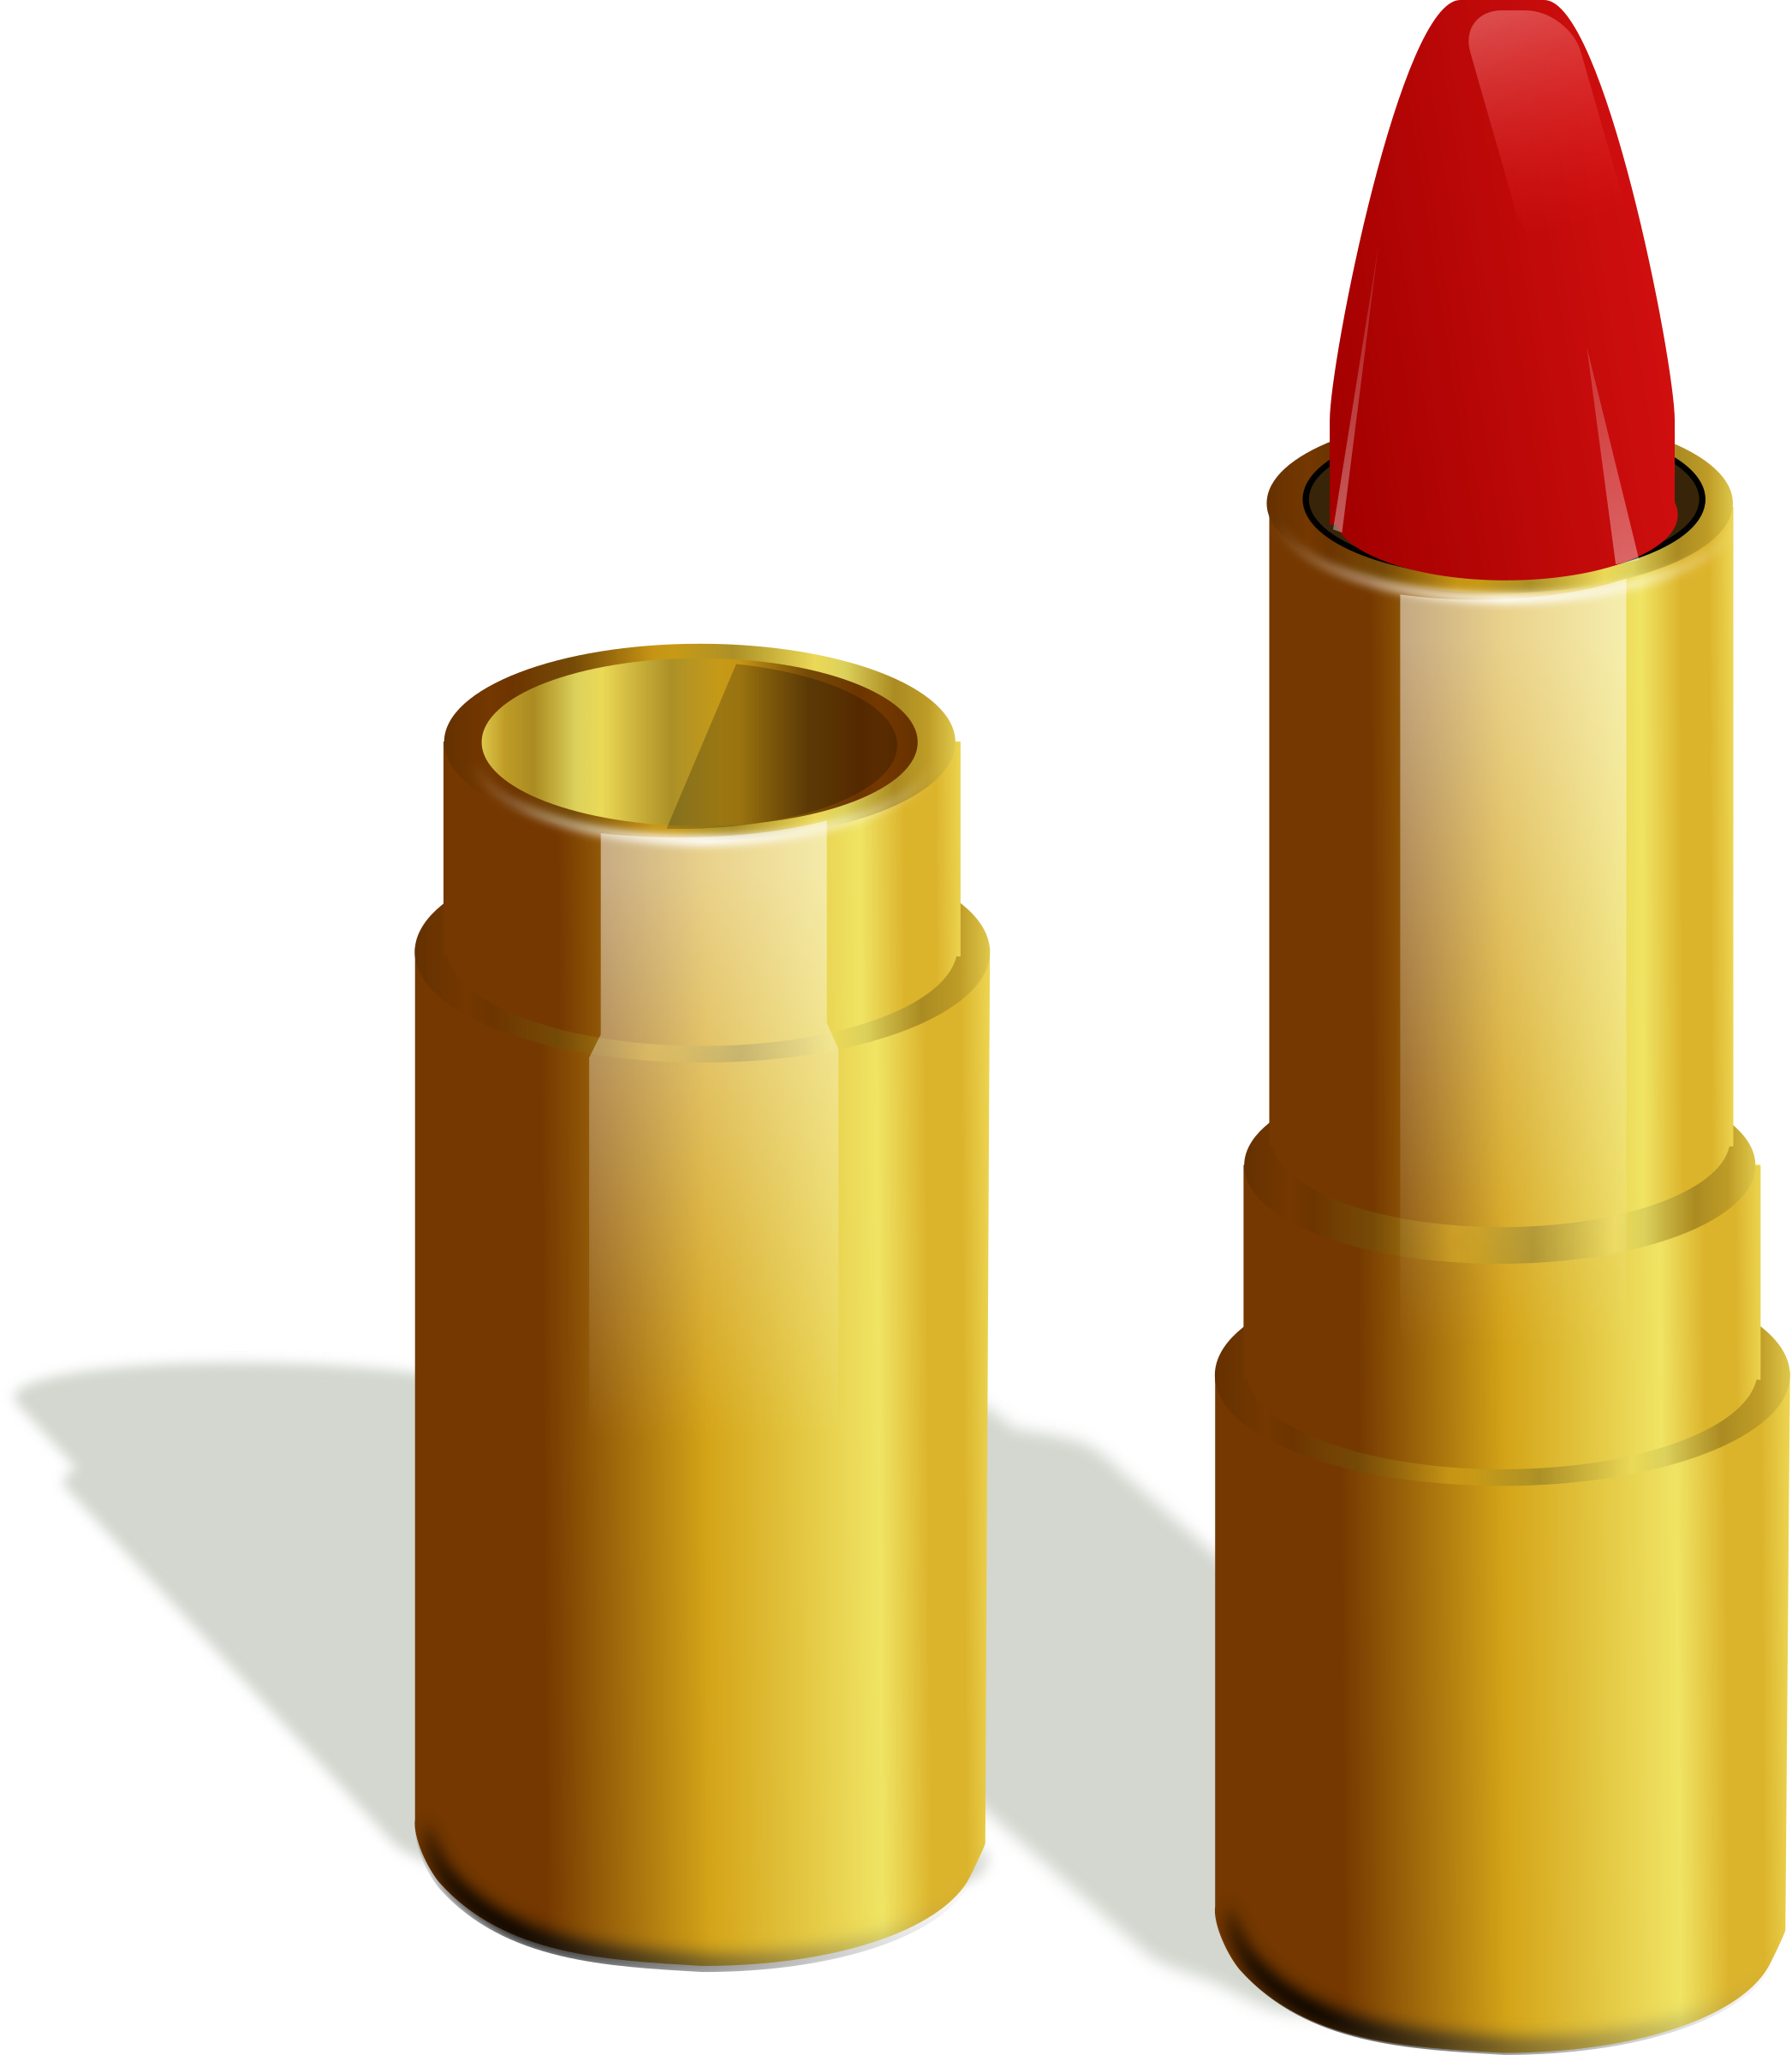 Big image png. Lipstick clipart gold lipstick